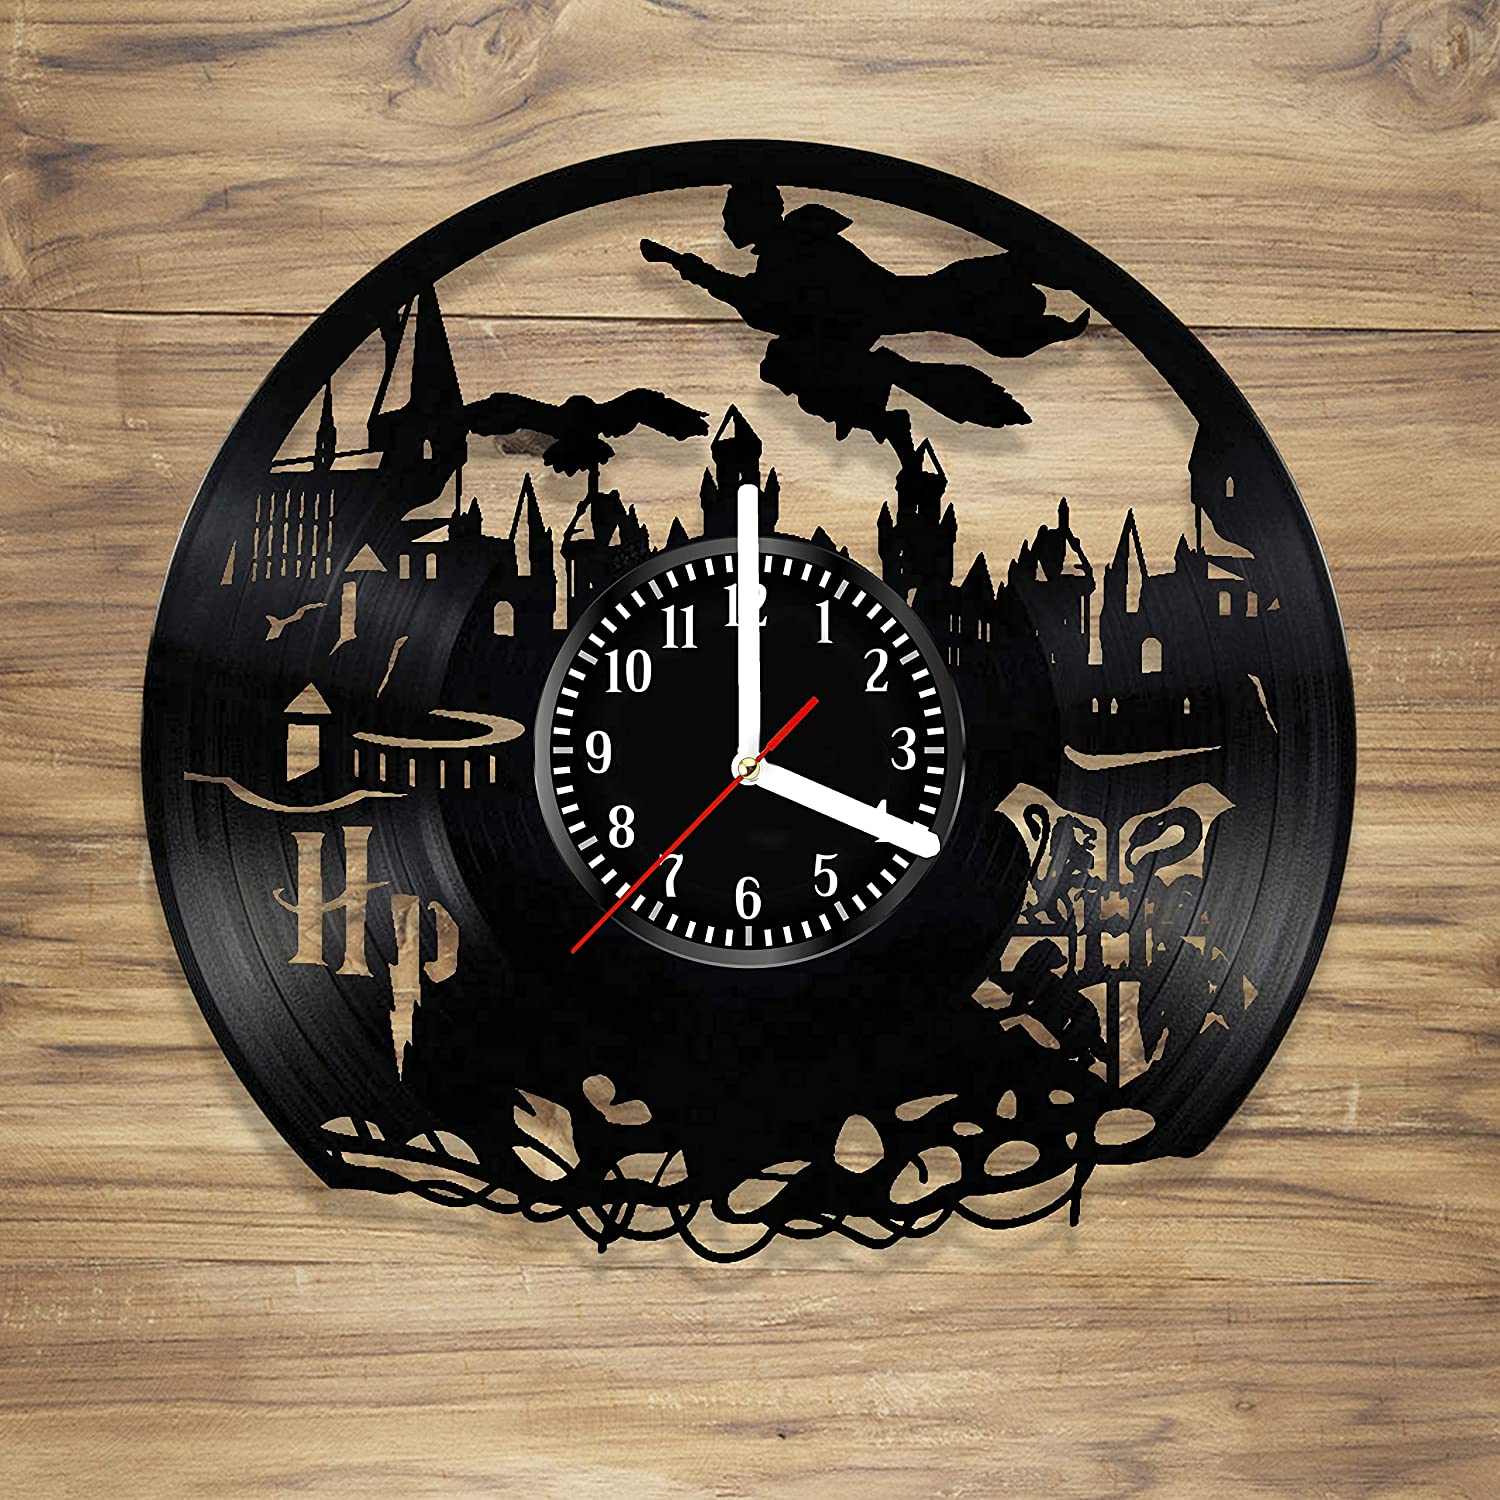 Harry Potter Wall Clock Vinyl Hogwarts Design Snape and Beautiful Art Decorate Your Home with Modern Style Unique Gift idea for Him and Her (12 inches)